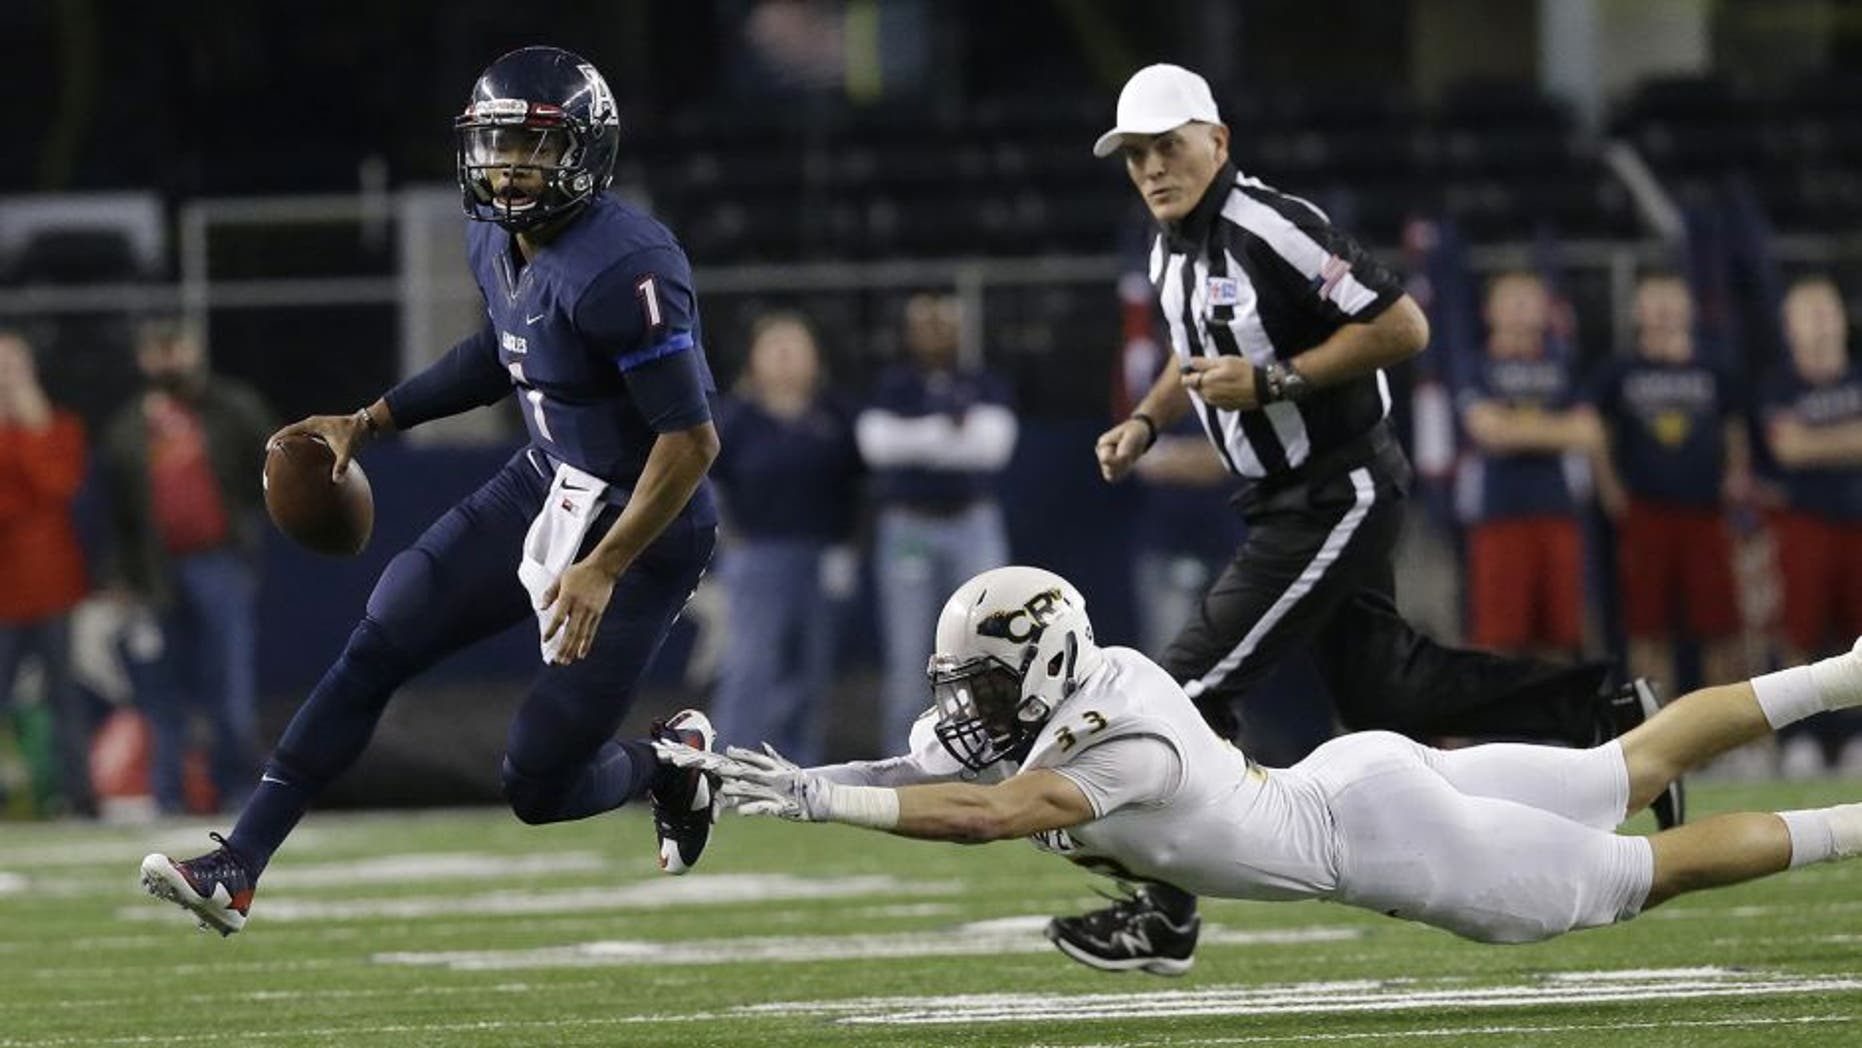 Allen quarterback Kyler Murray (1) eludes Cypress Ranch linebacker Brayden Stringer (33) during the first half of the UIL 6A Division I state championship football game Saturday, Dec. 20, 2014, in Arlington, Texas. (AP Photo/LM Otero)